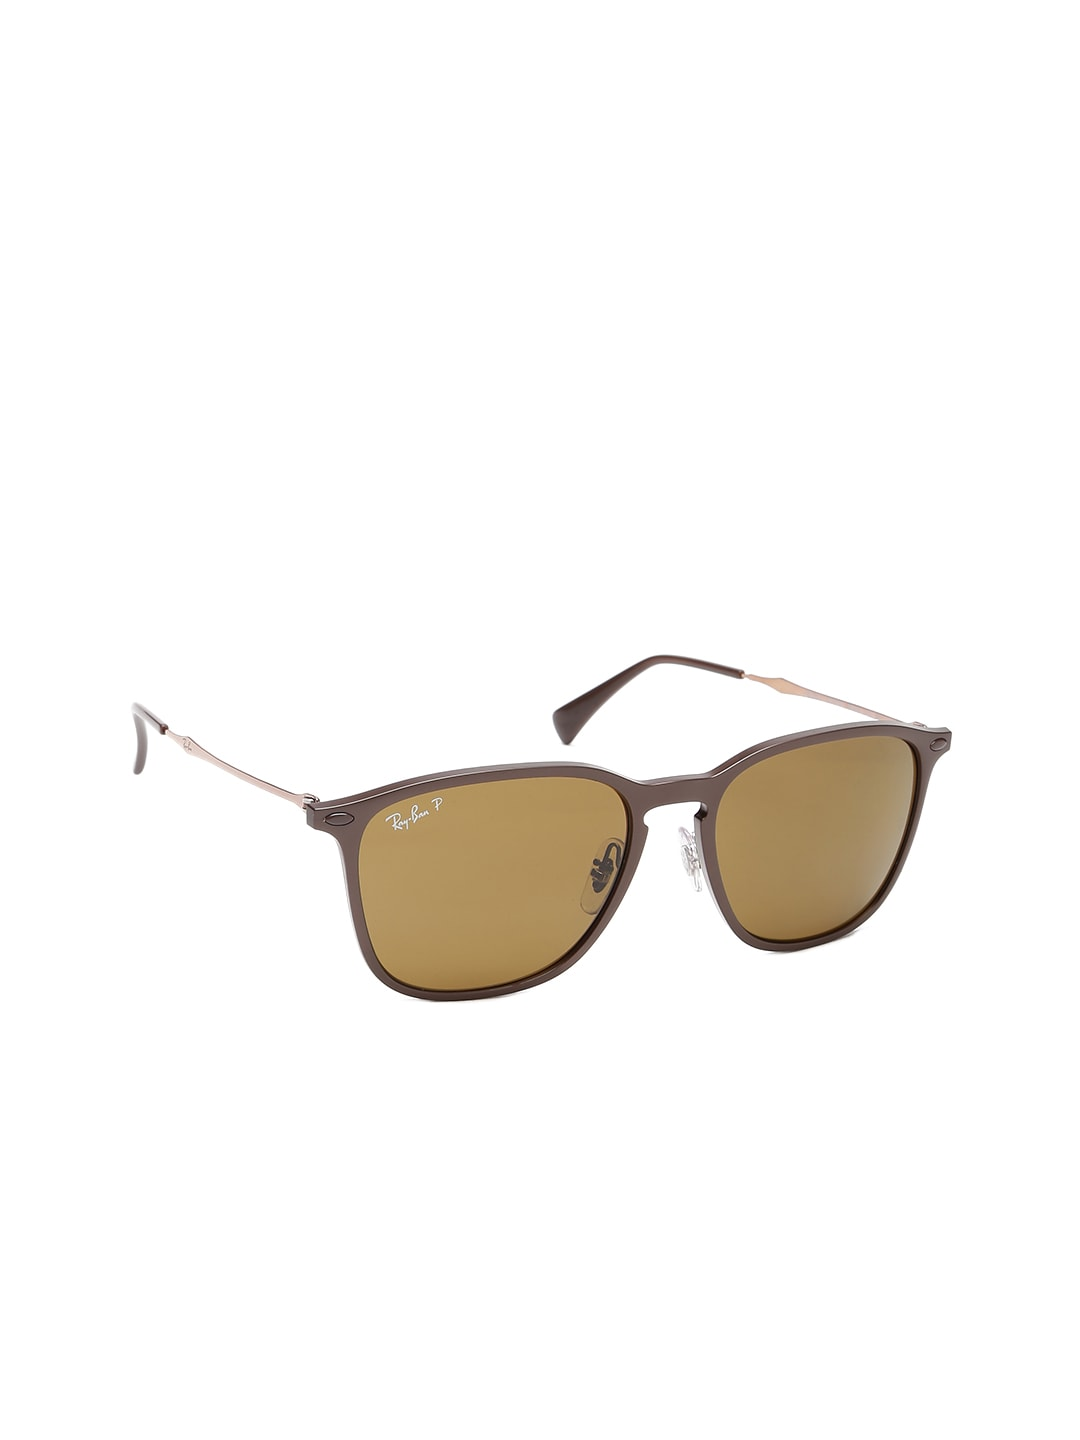 43481fdbd50a9 Ray Ban - Buy Ray Ban Sunglasses   Frames Online In India